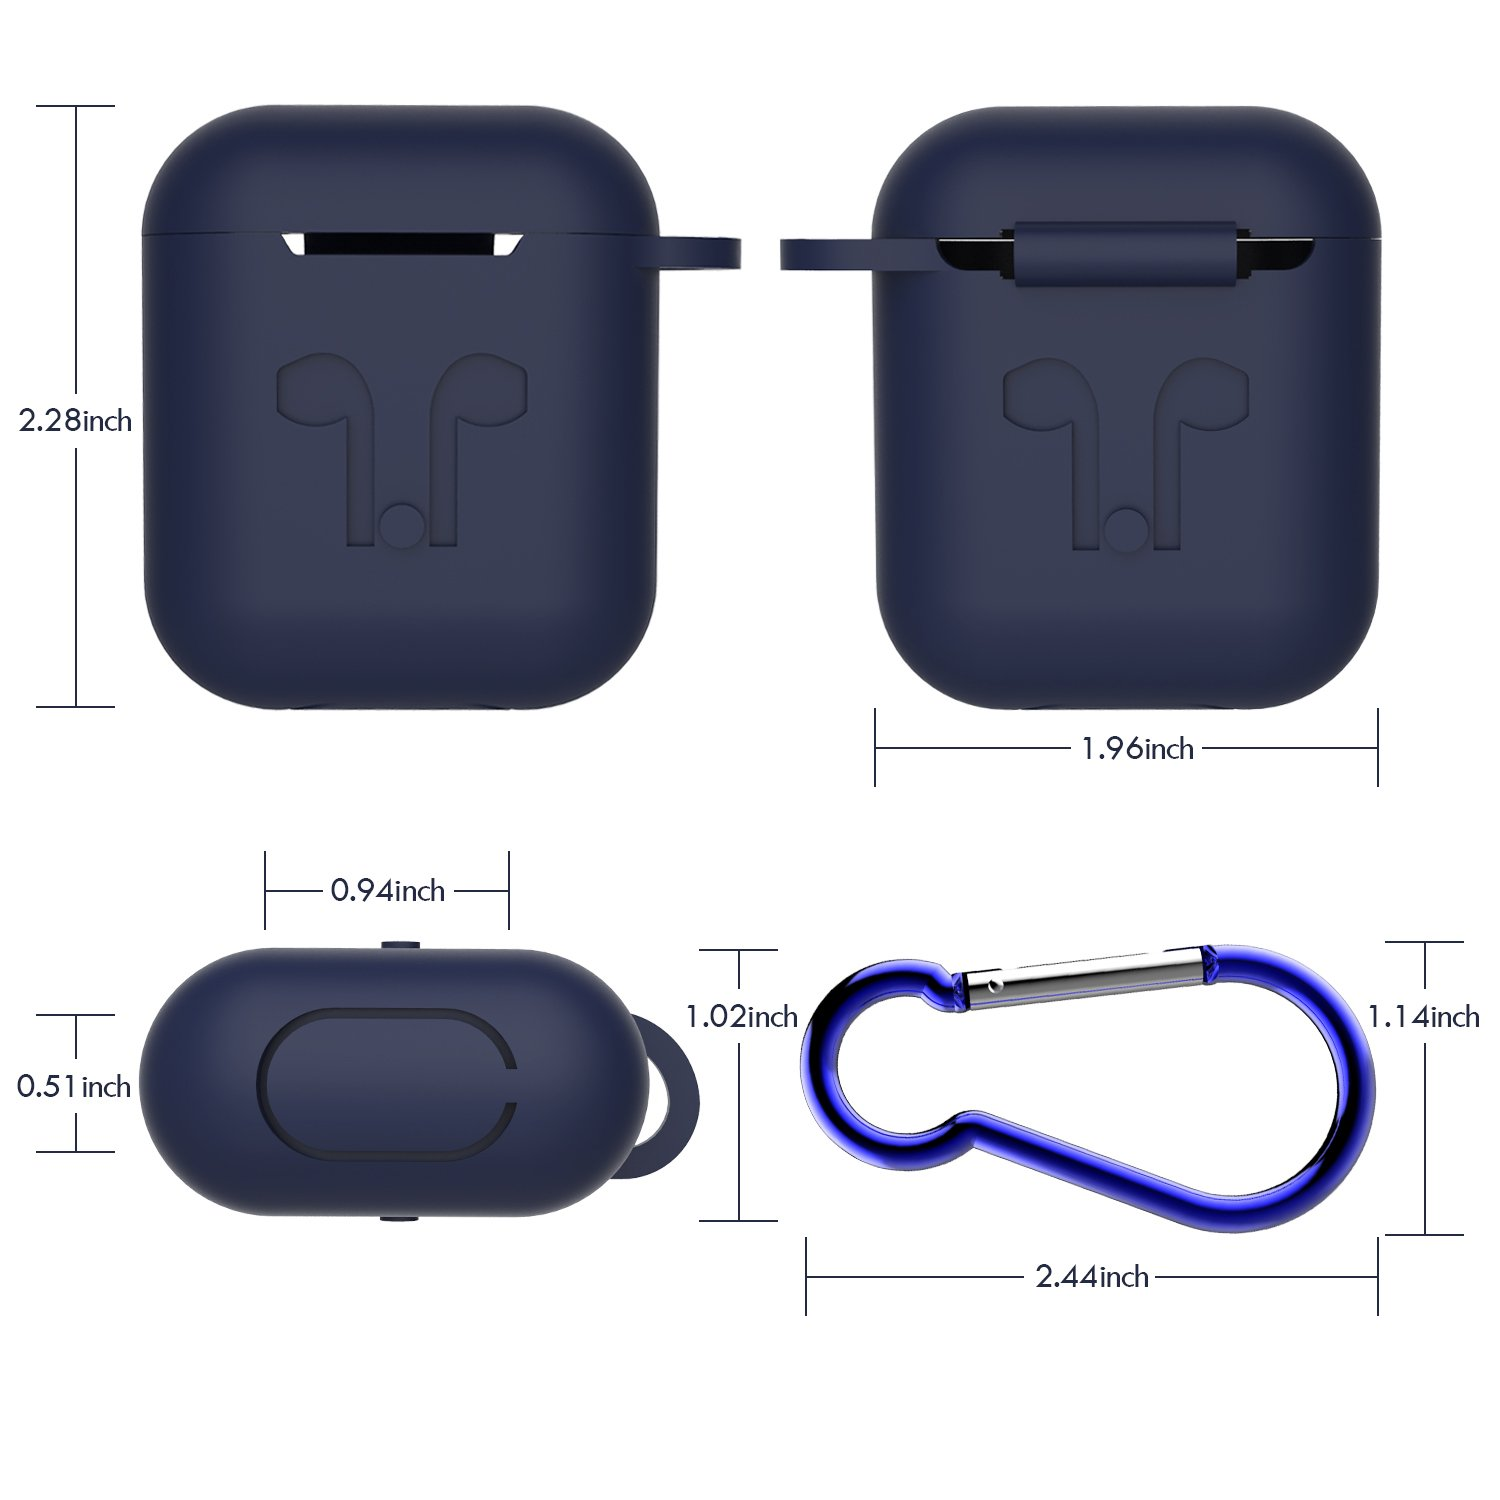 AirPods Case Protective Silicone Cover for Apple Airpods Charging Case Airpods Accessories by GULAKI